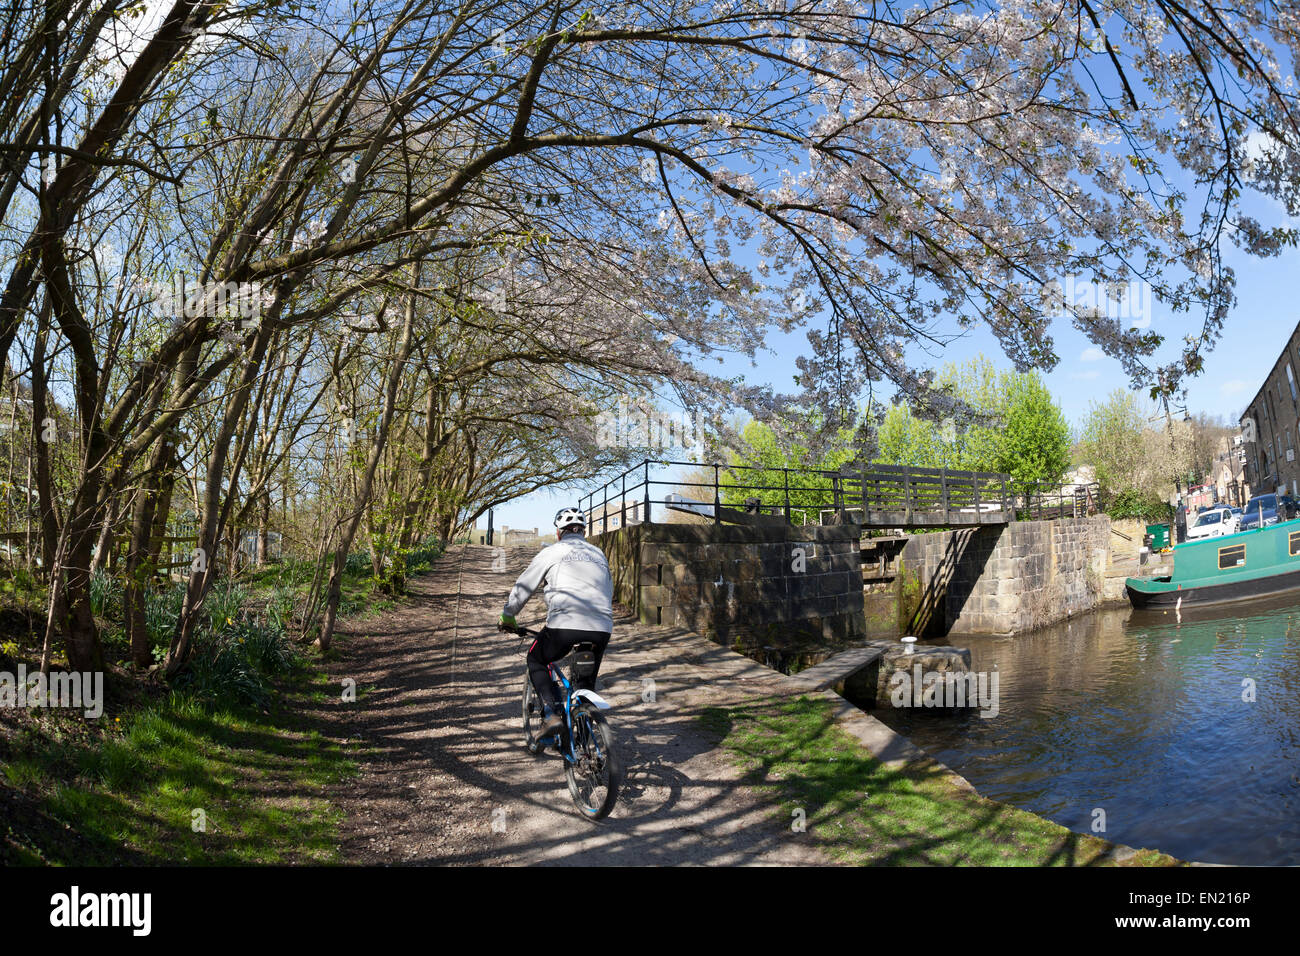 Cherry blossom overhanging the canal towpath, with cyclist, Sowerby Bridge, West Yorkshire - Stock Image